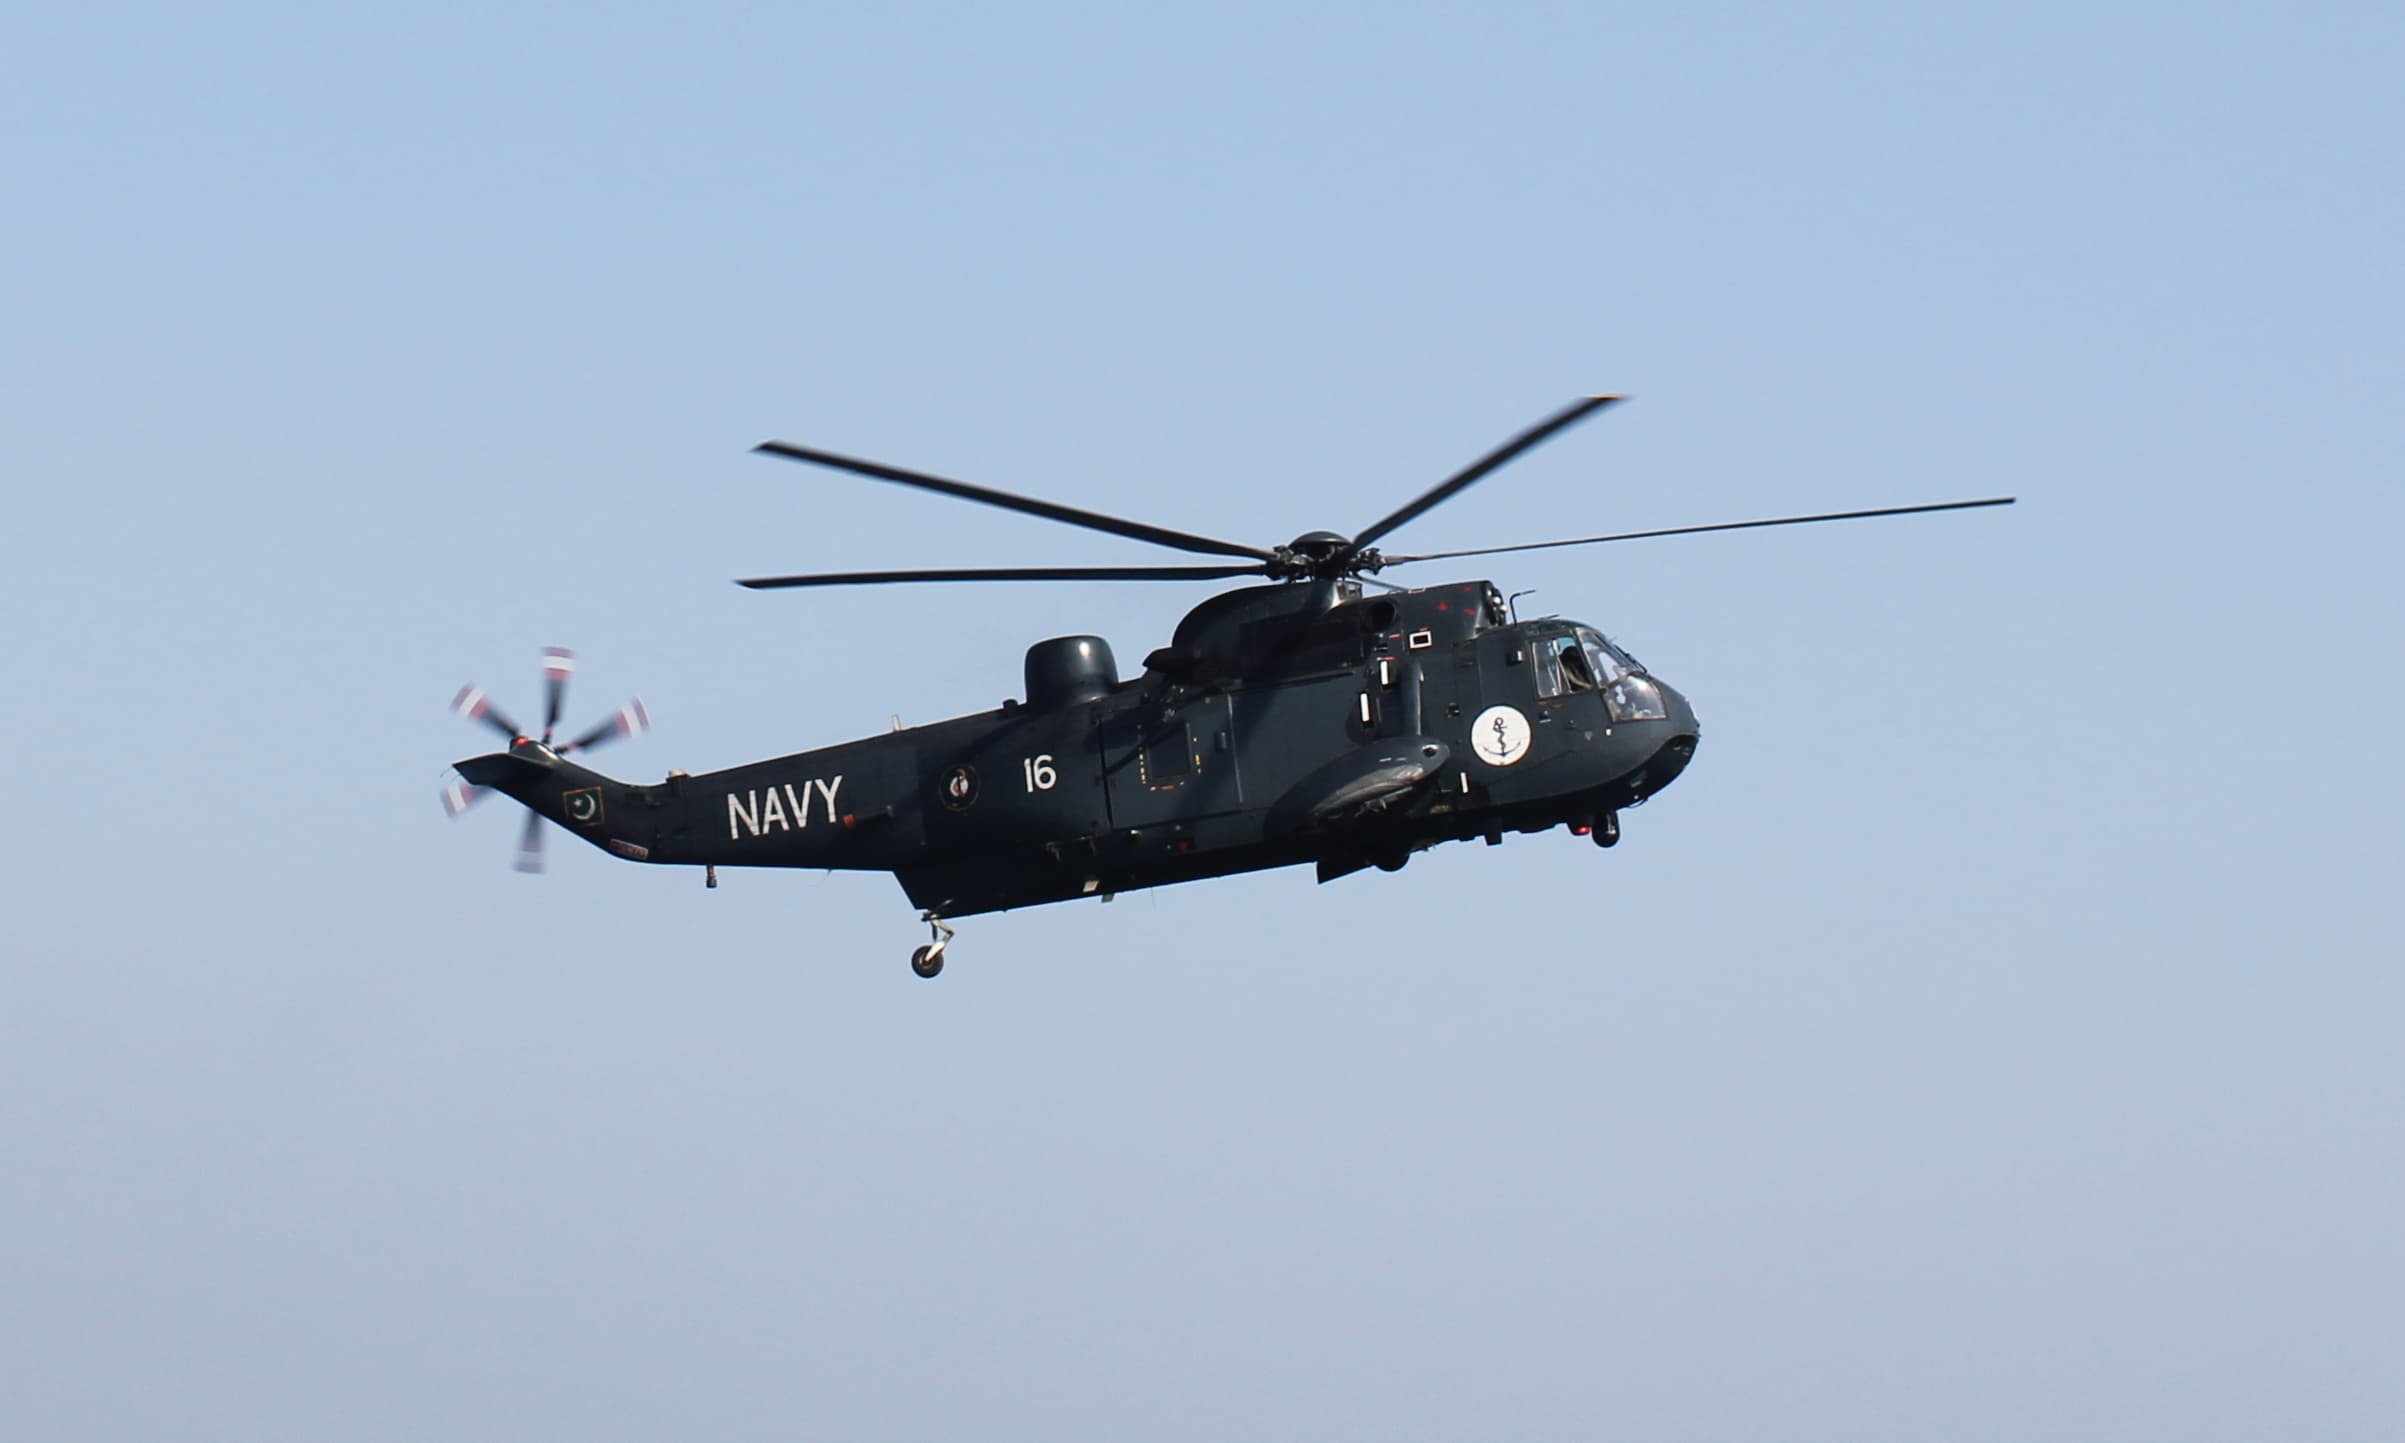 The Sea King helicopter is primarily a search and rescue chopper. — Tauseef Mallick/File